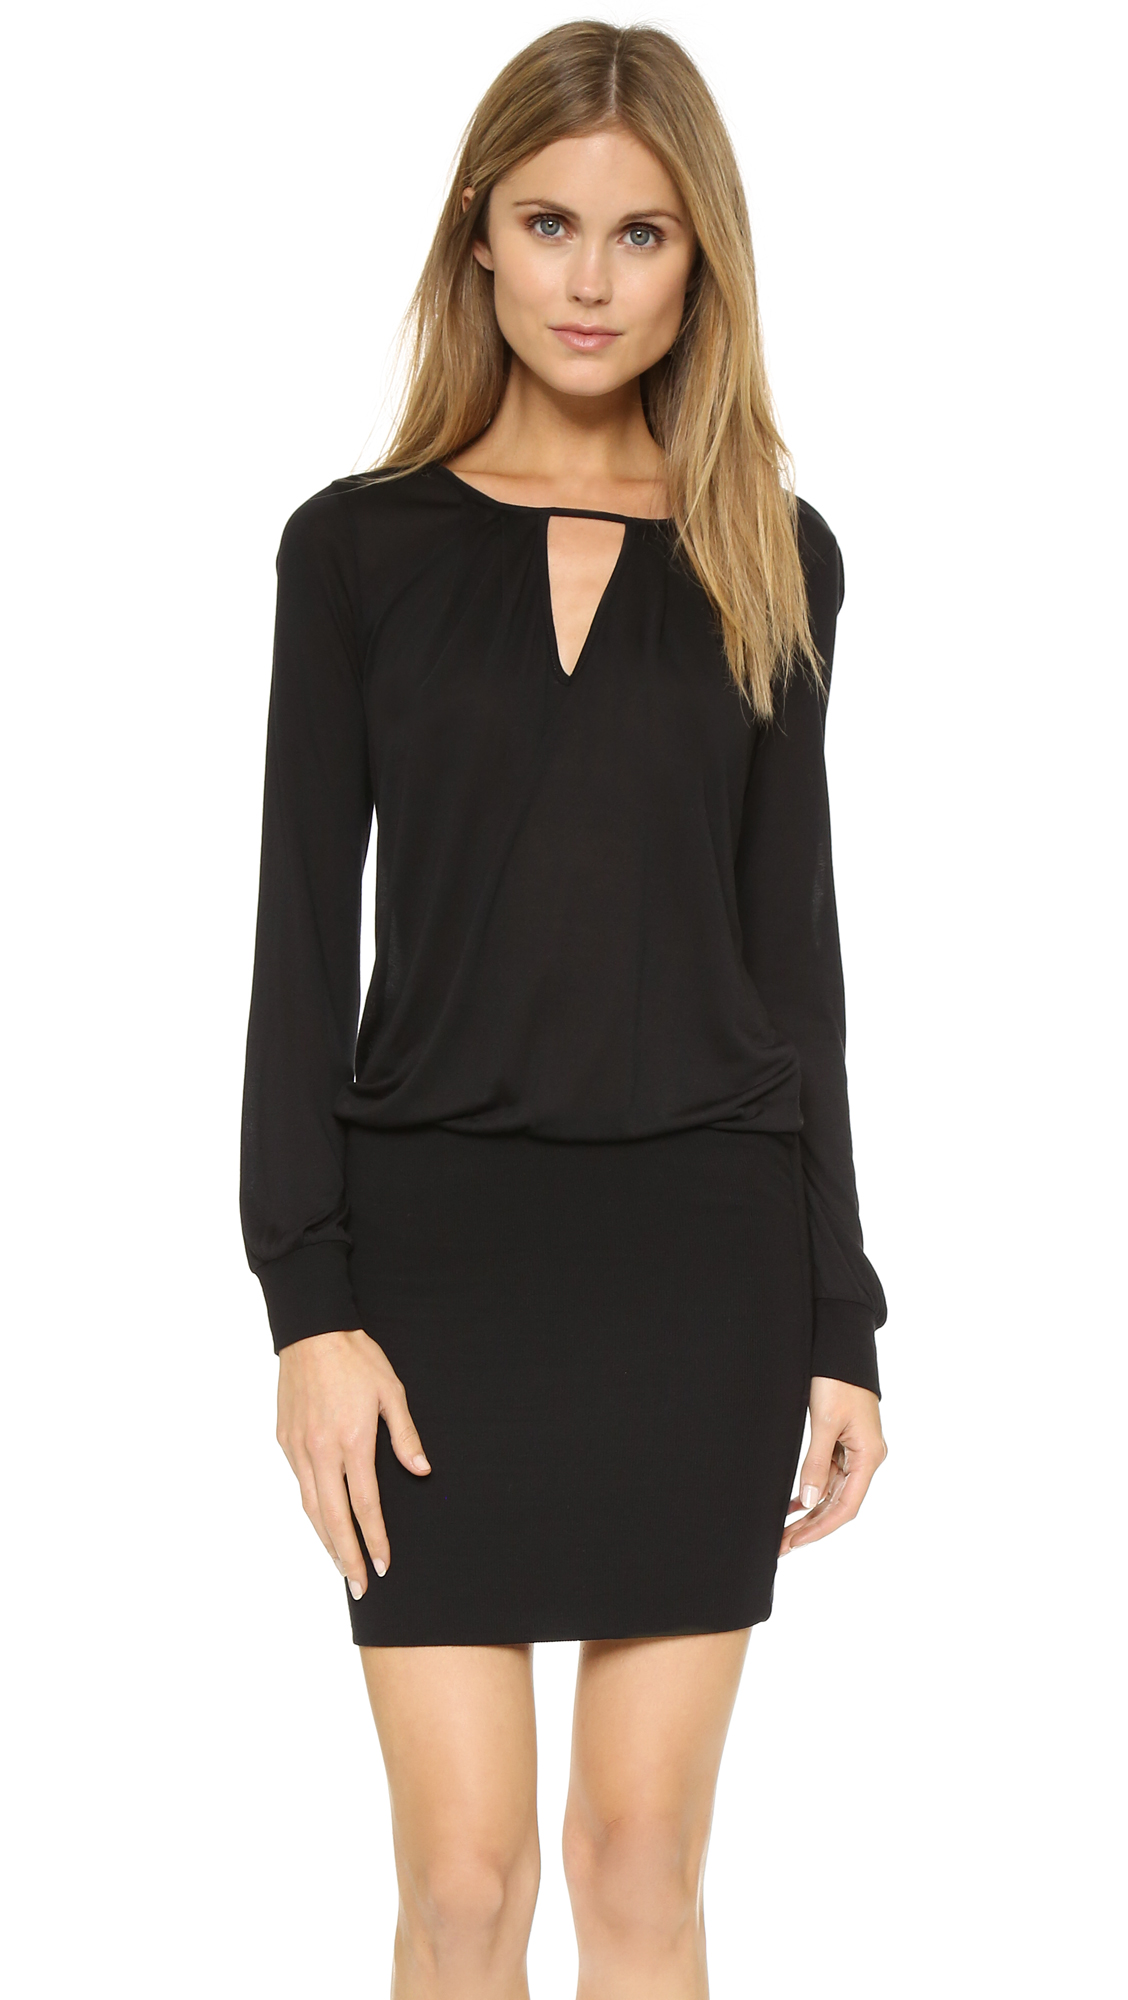 Lanston Cutout Mini Dress - Black at Shopbop